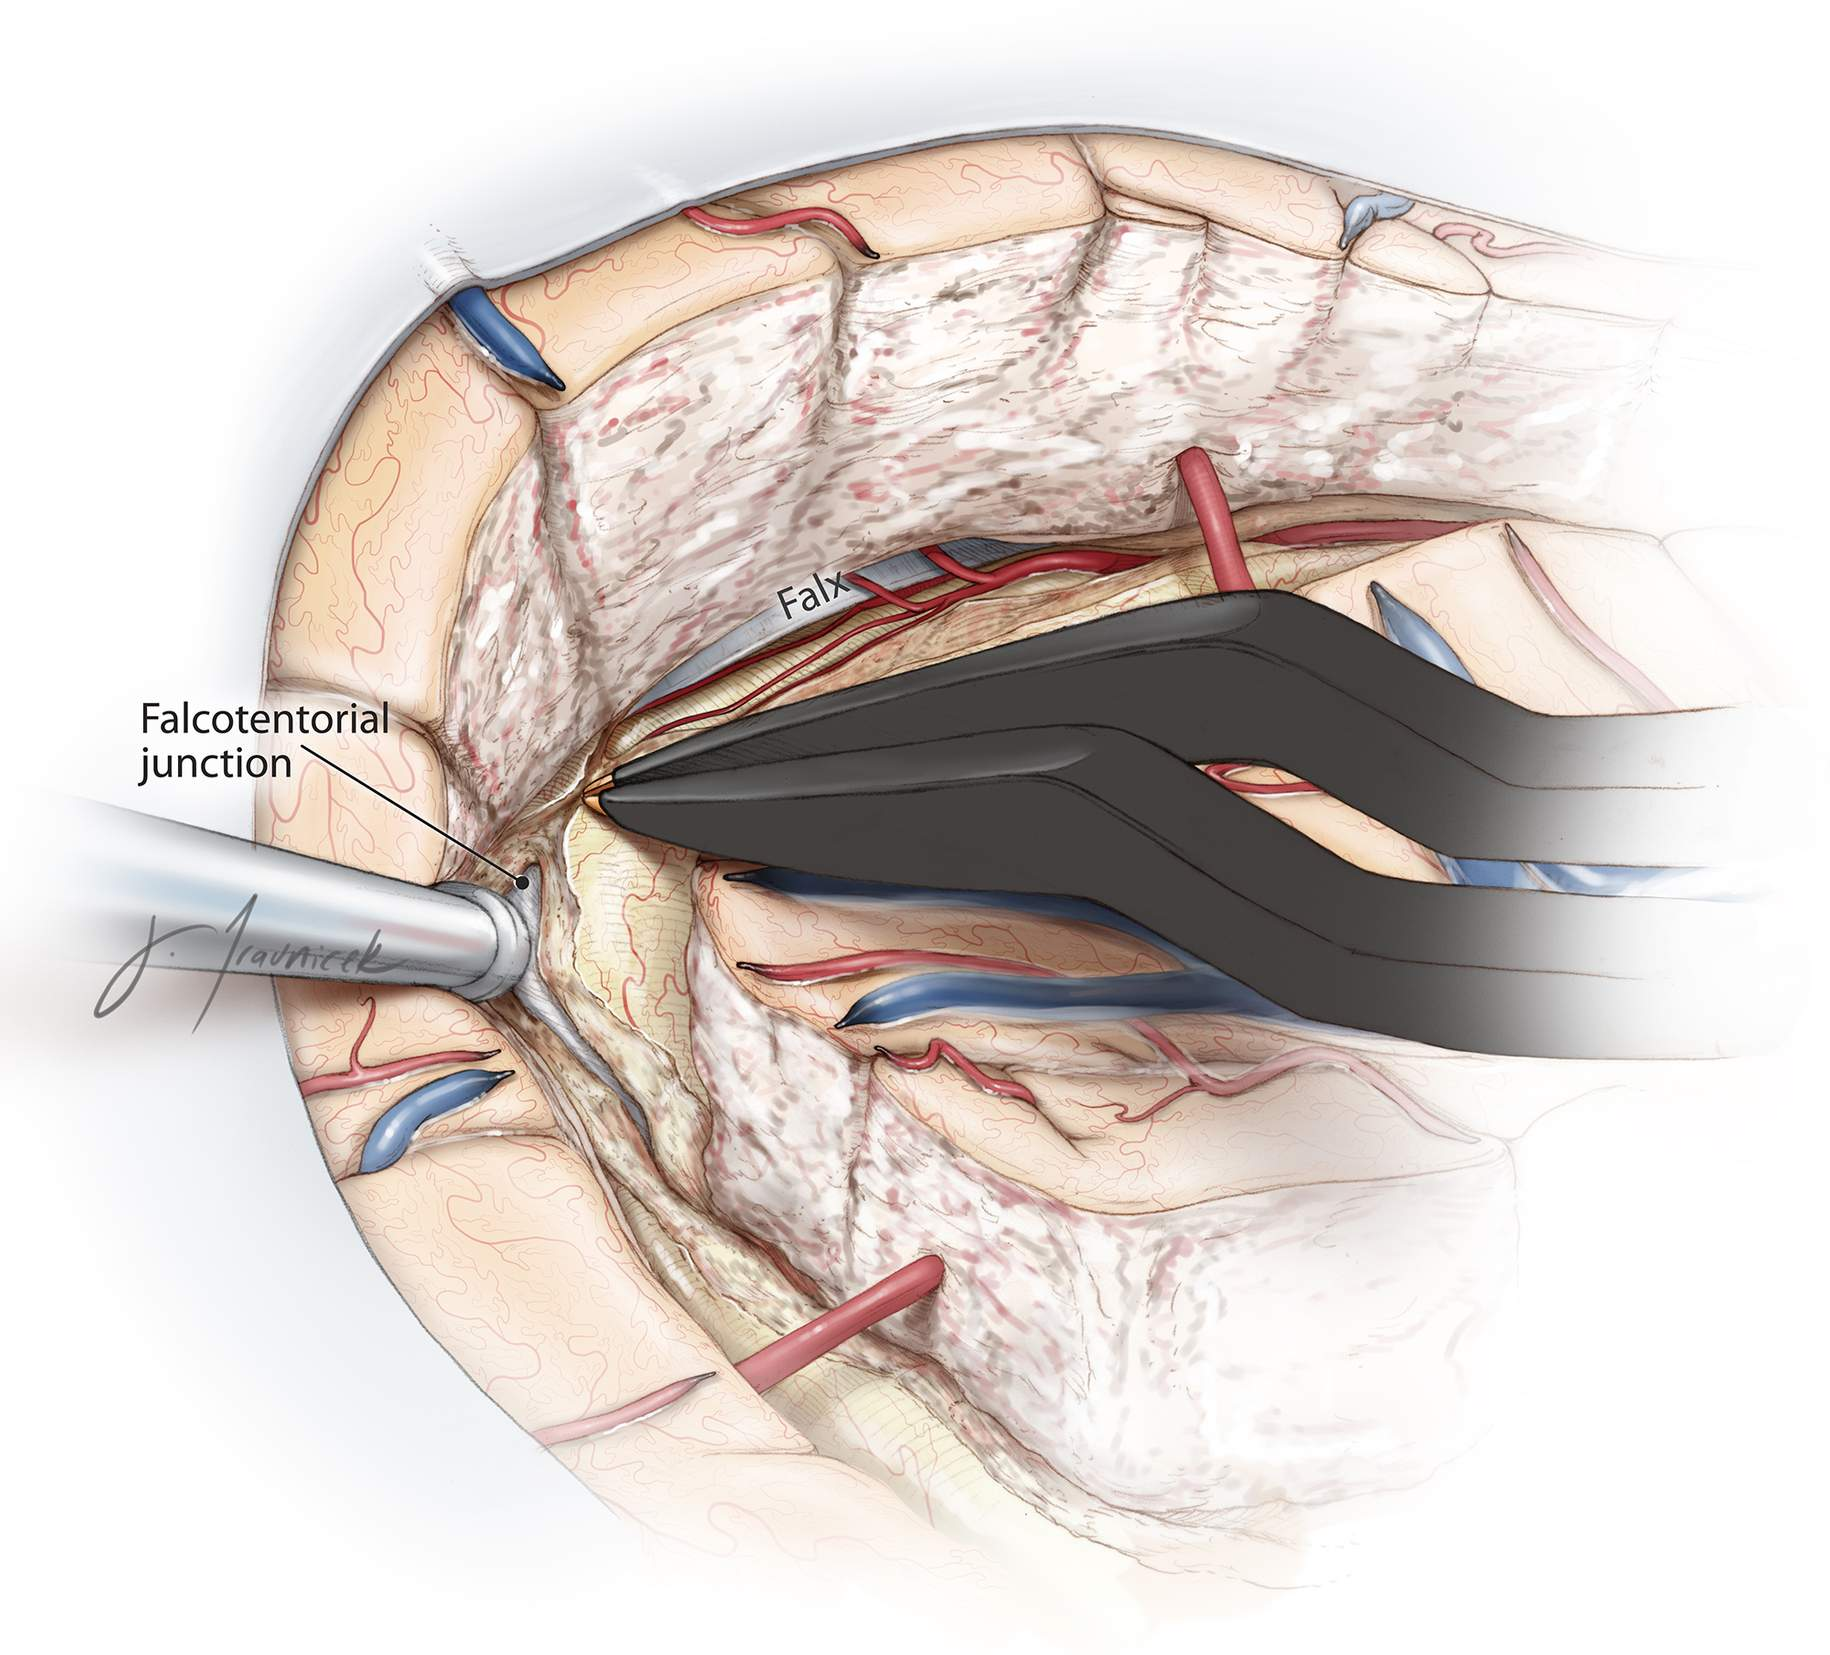 Figure 15: The posterior edge of the falx continues to guide the surgeon to reach the tentorium. Care should be taken to continue subpial dissection during this transection and to preserve branches of the posterior cerebral artery crossing through the medial and inferior arachnoid membranes. The dissection within the atrium of the lateral ventricle must be performed posterior to the choroid plexus to ensure preservation of the thalamus.